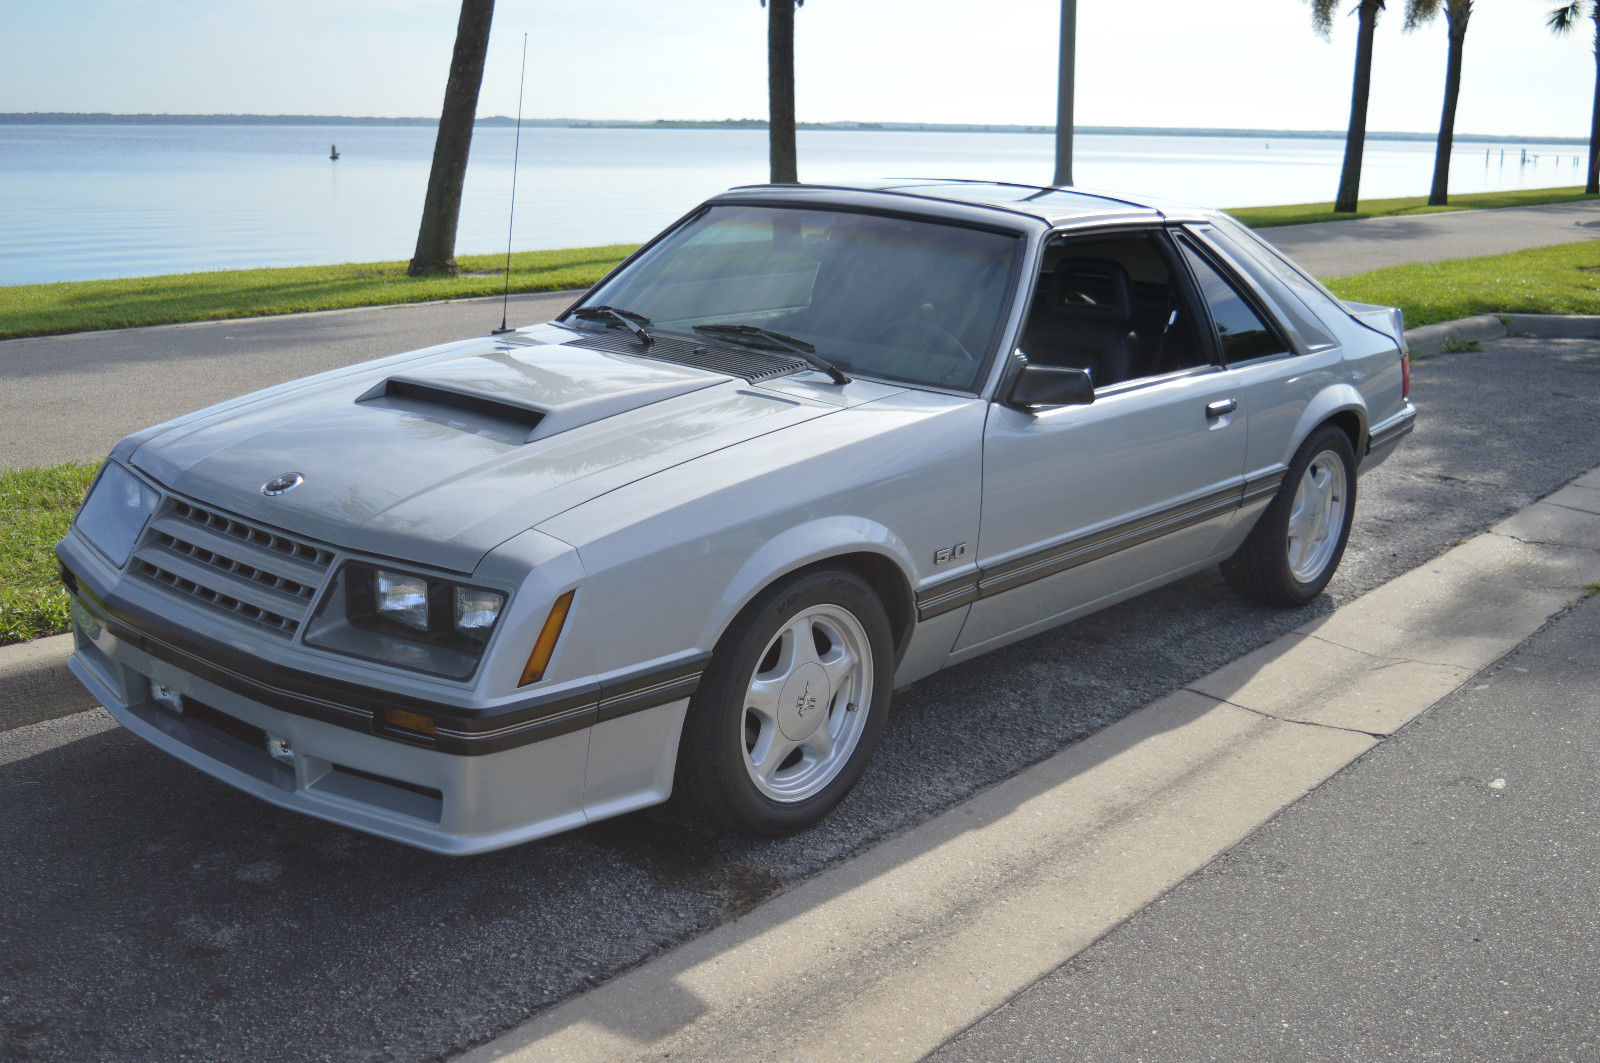 1982 mustang gt t top classic ford mustang 1982 for sale - Mustang gt ...